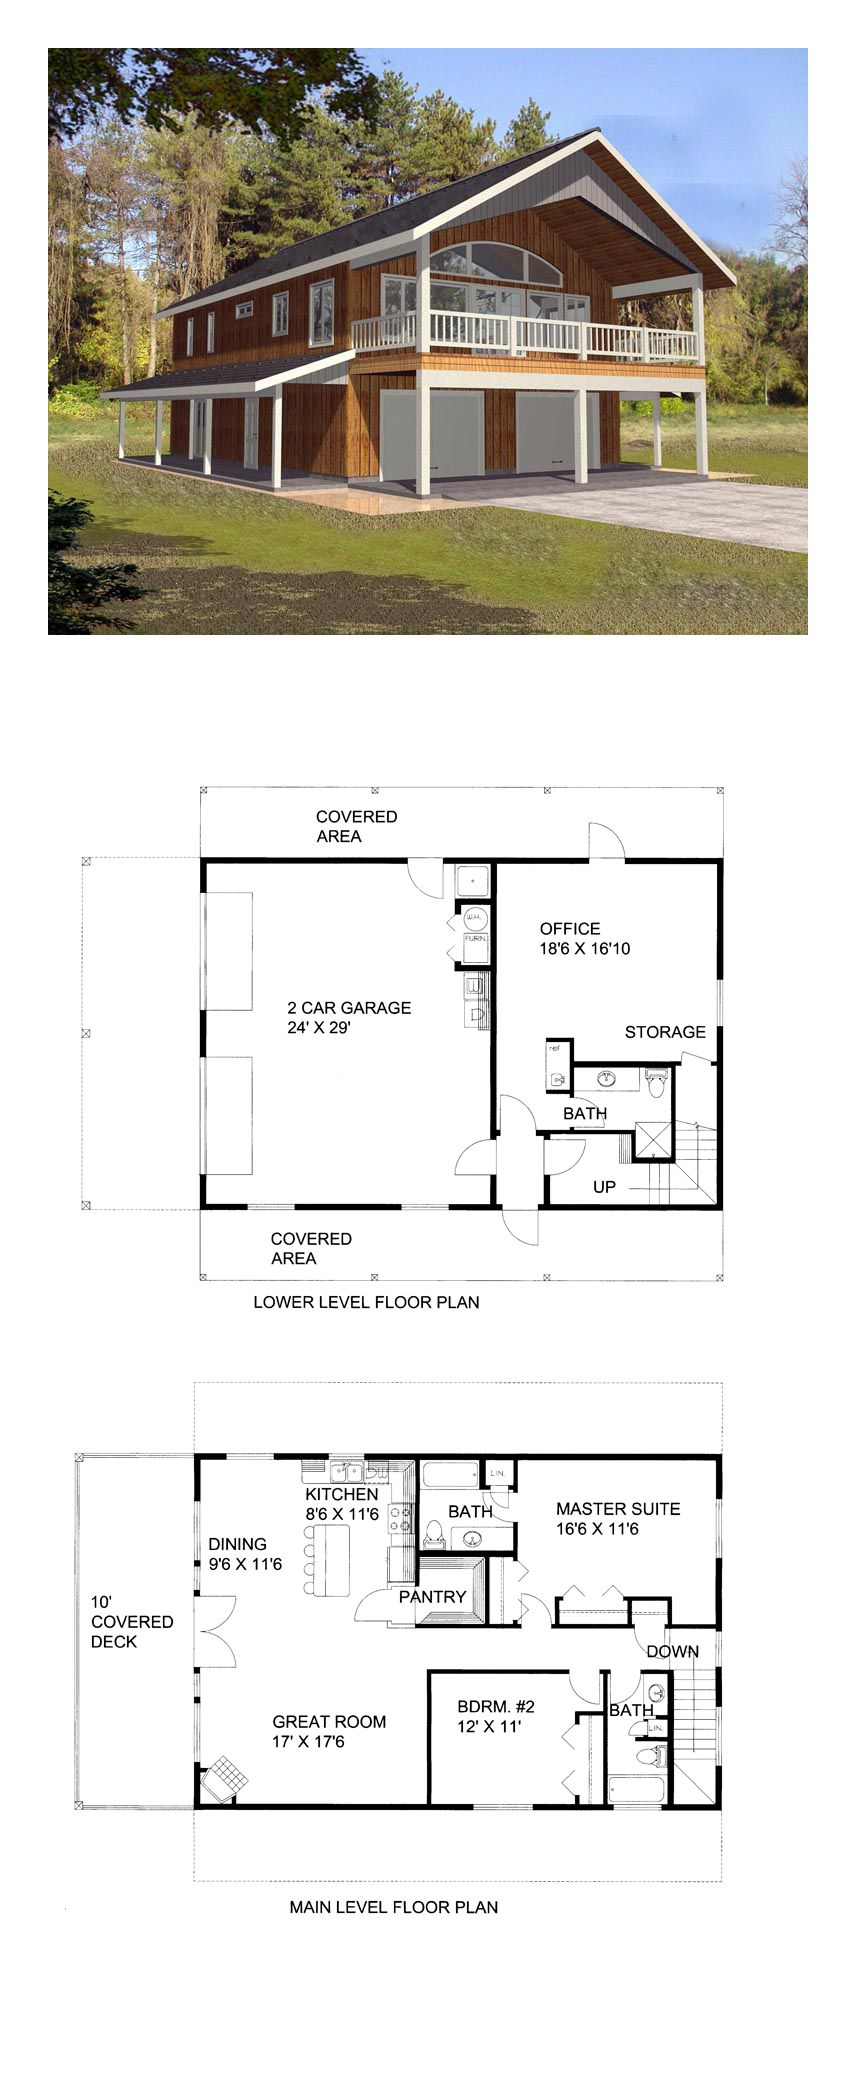 Garage apartment plan 85372 total living area 1901 sq for House plans with room over garage